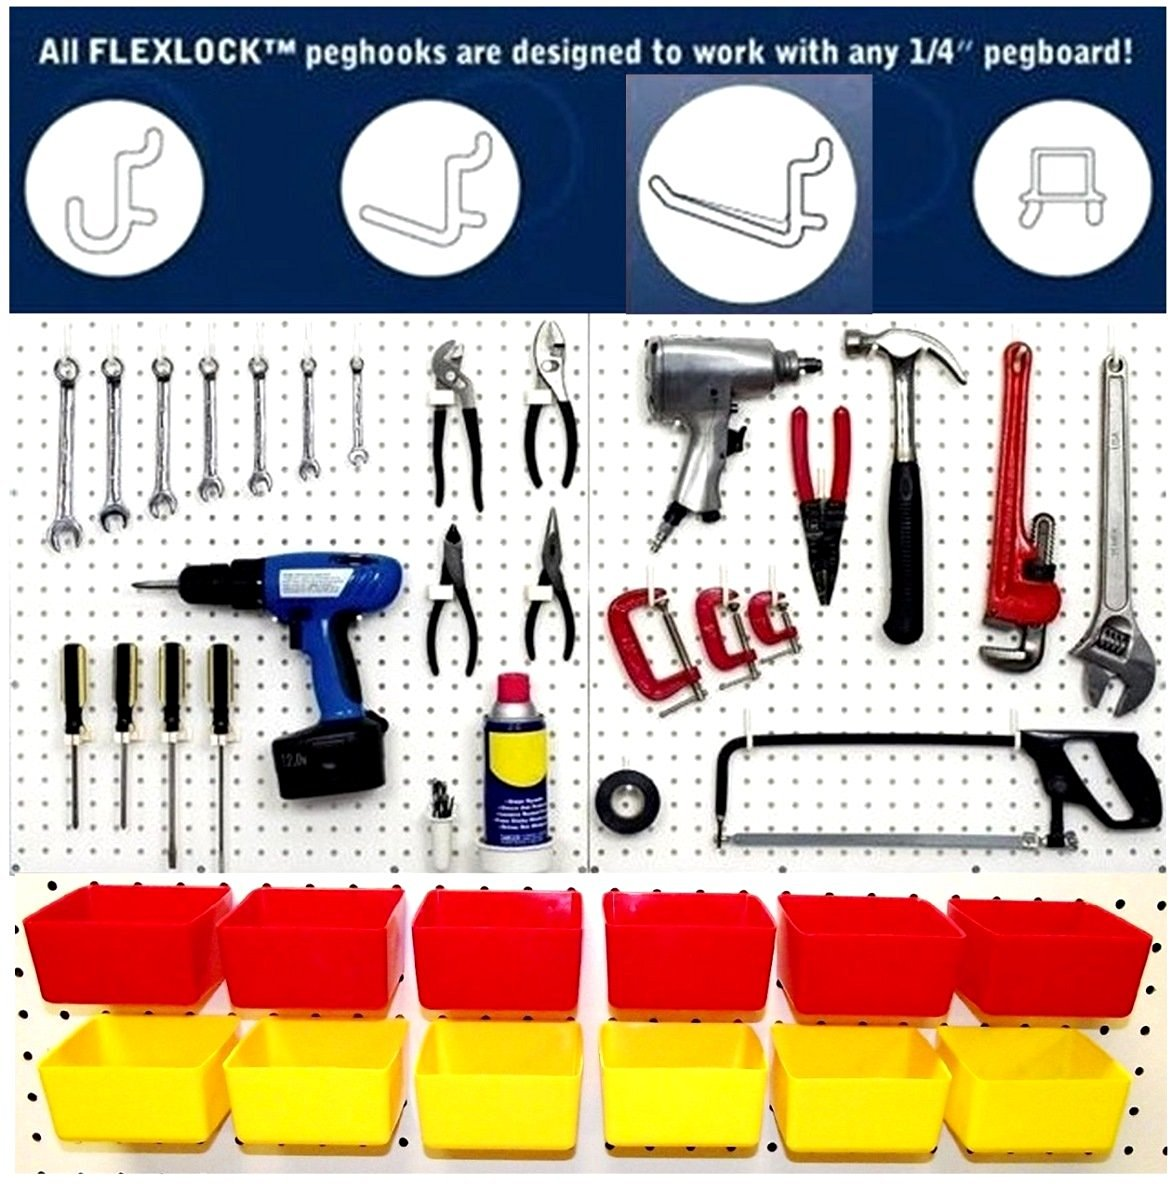 Wallpeg Craft & Tool Organizer Bins & Peg Hooks – 10 Red Bins and 80 Assorted Peg Hooks AM-90R 2